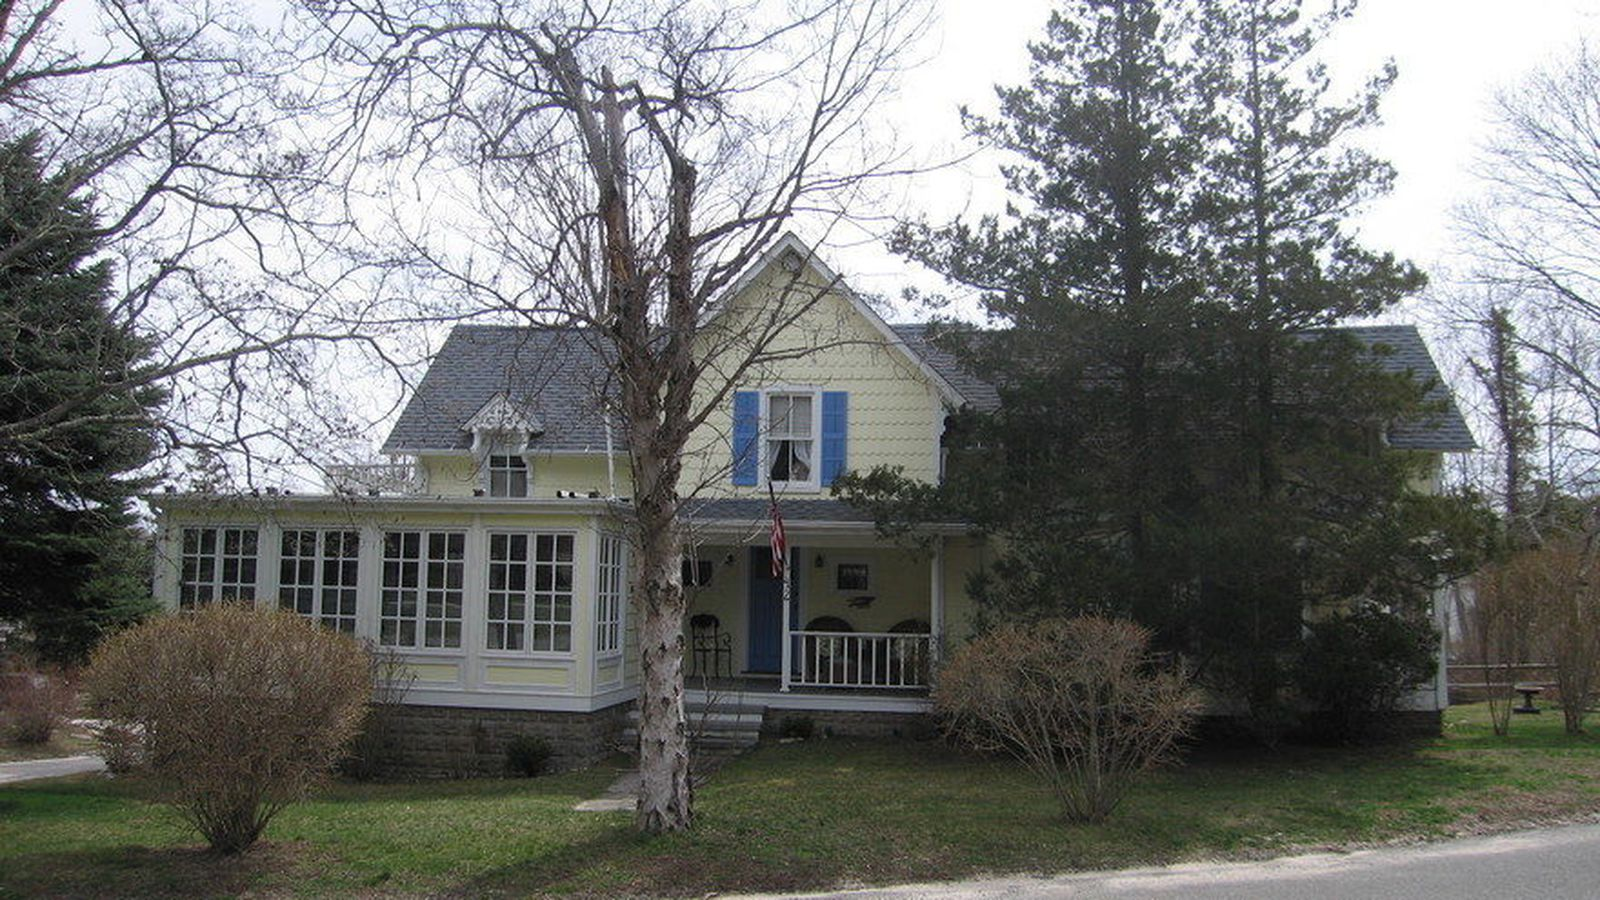 shelter island heights single mature ladies Find bed and breakfast deals in new york united states  ladies getaways  new york, shelter island heights read more special baskets .